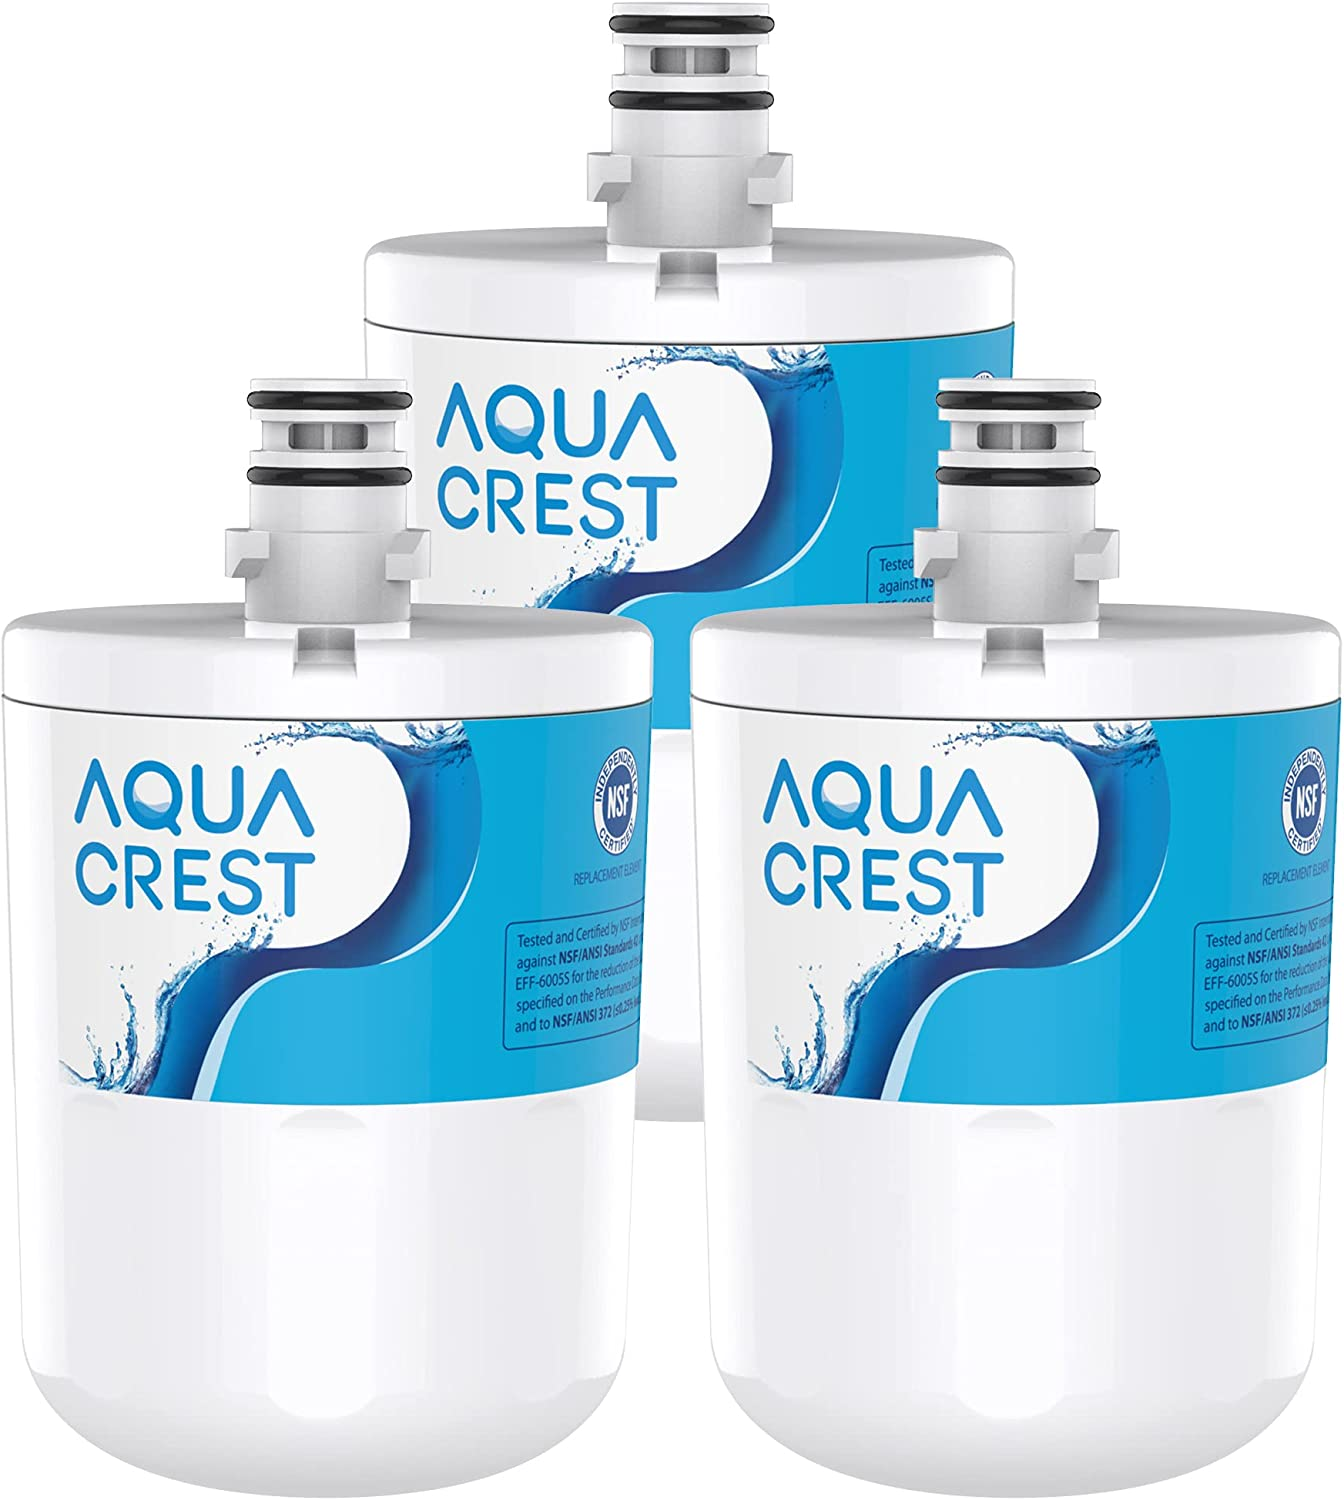 AQUACREST 5231JA2002A Refrigerator Our shop OFFers the best Columbus Mall service Water Filter Replacement for